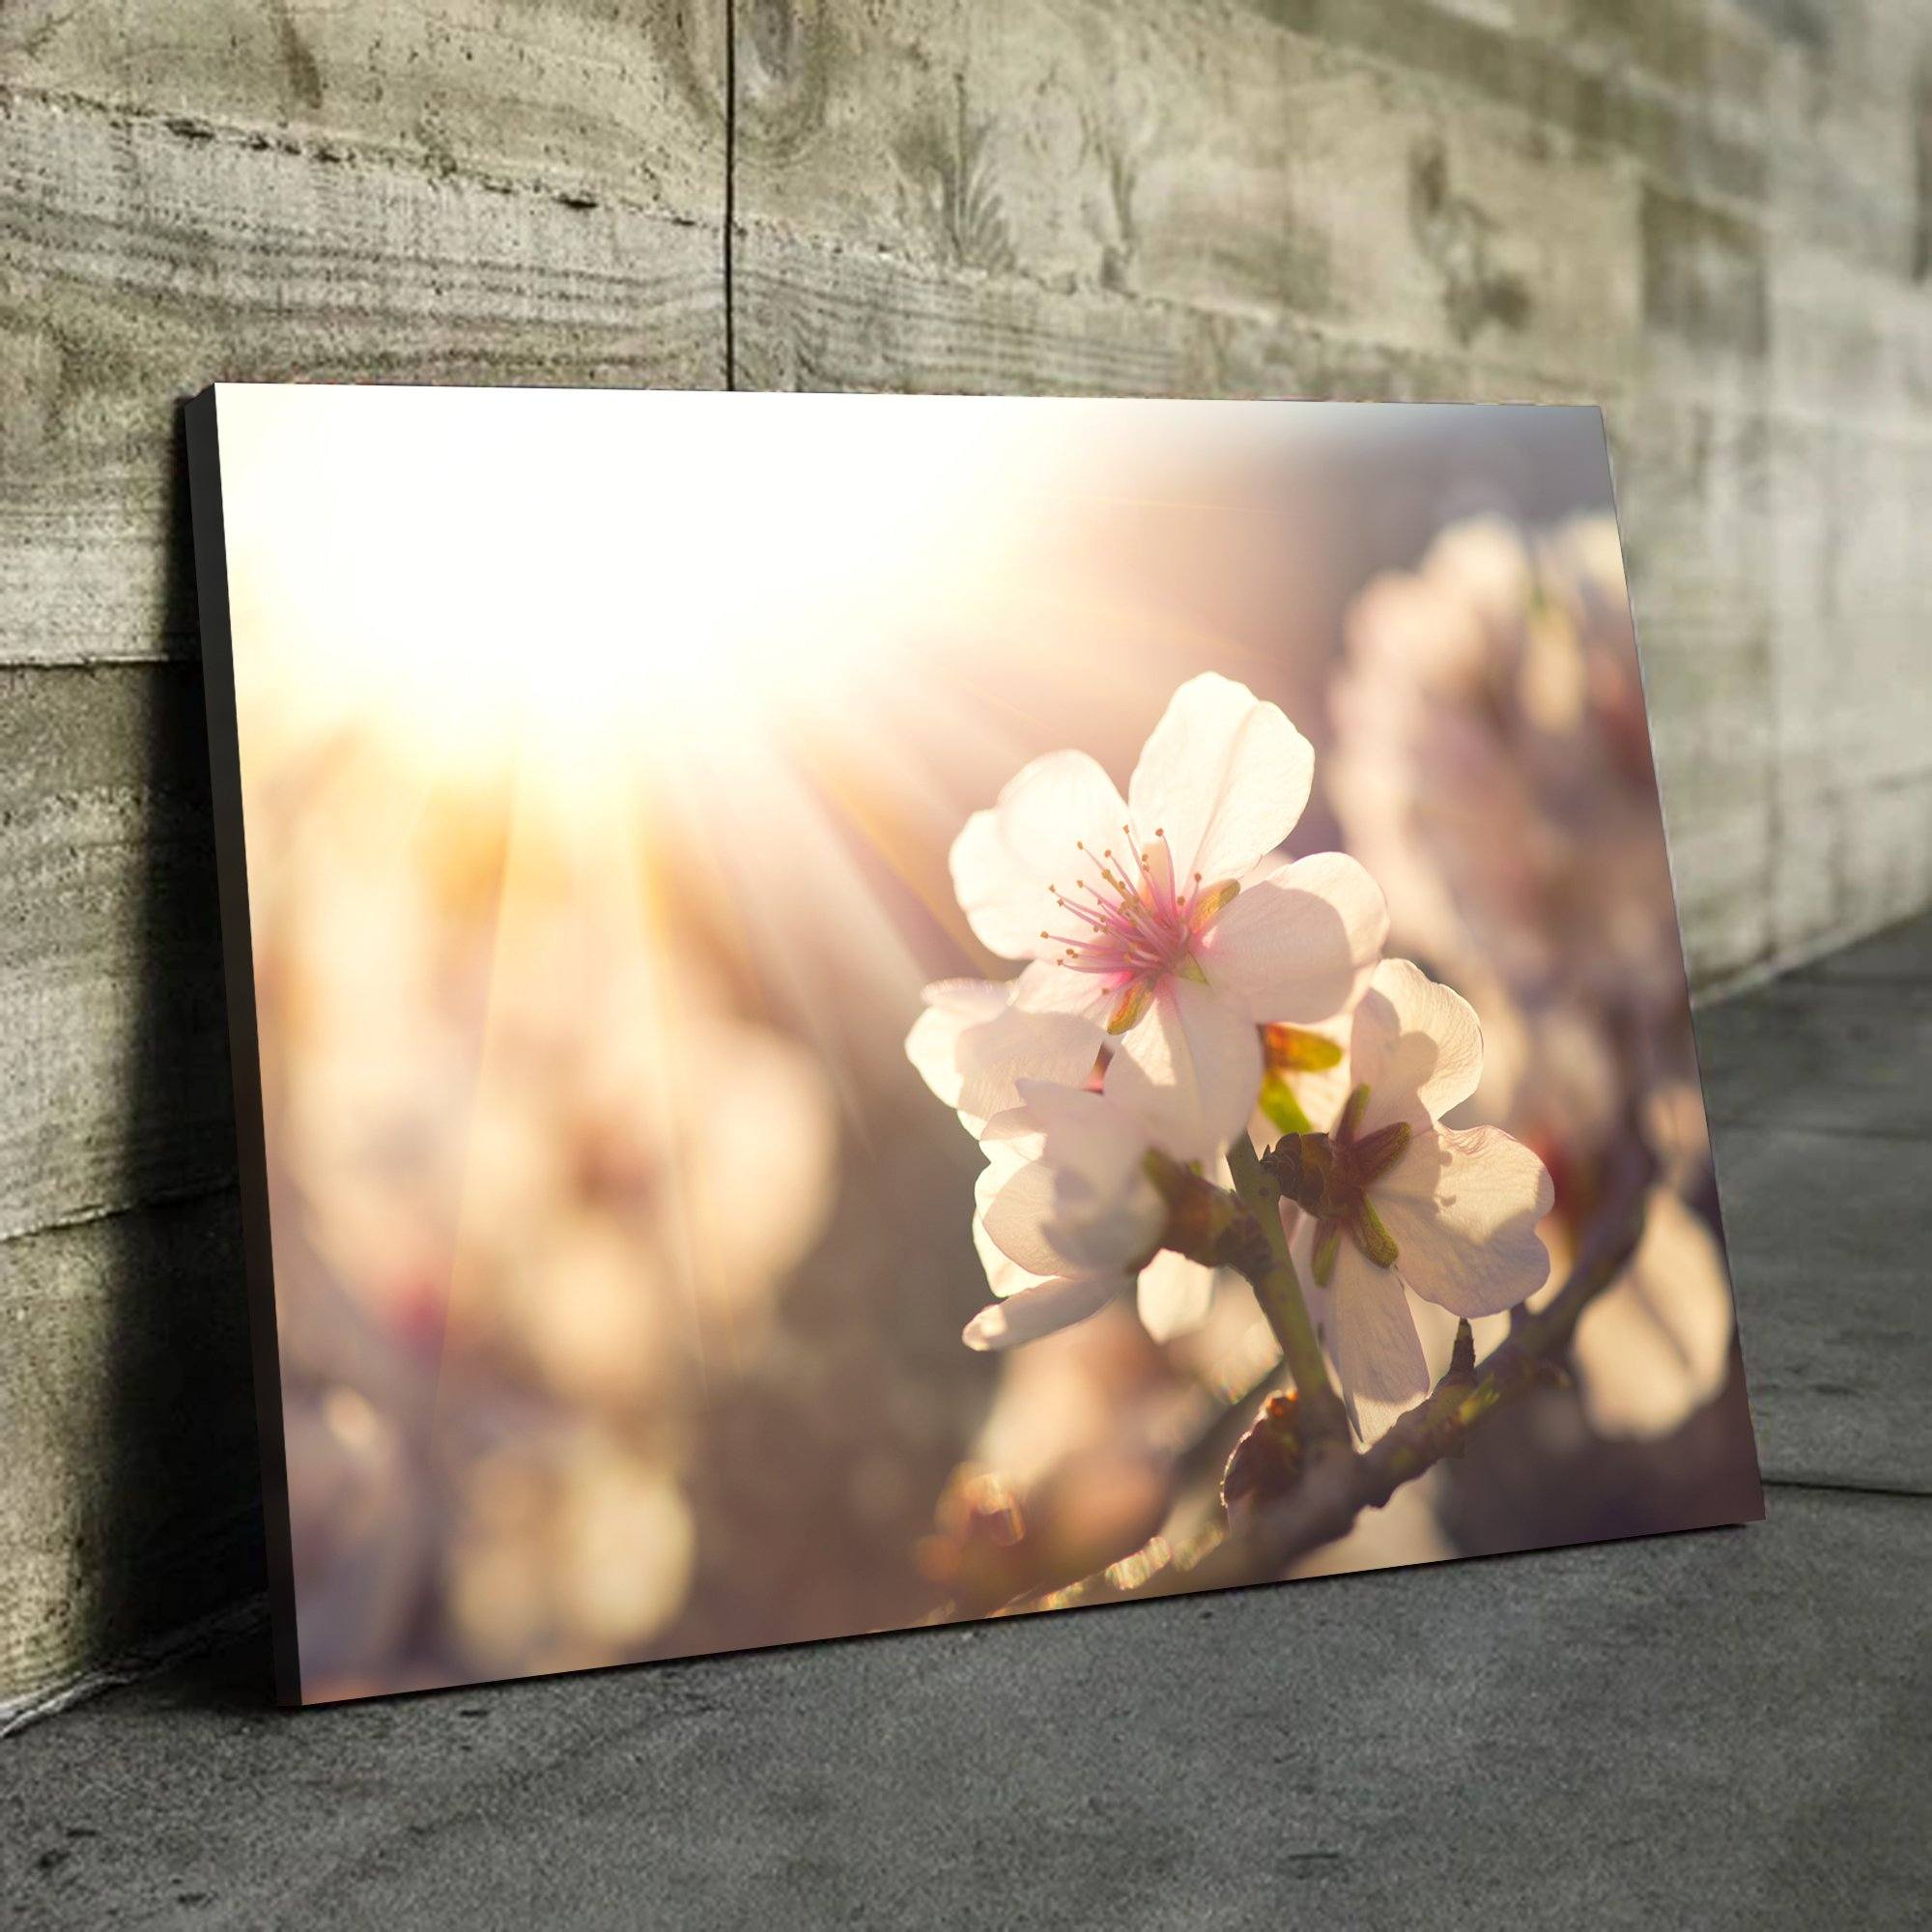 Spring Blossom living room wall art black frame